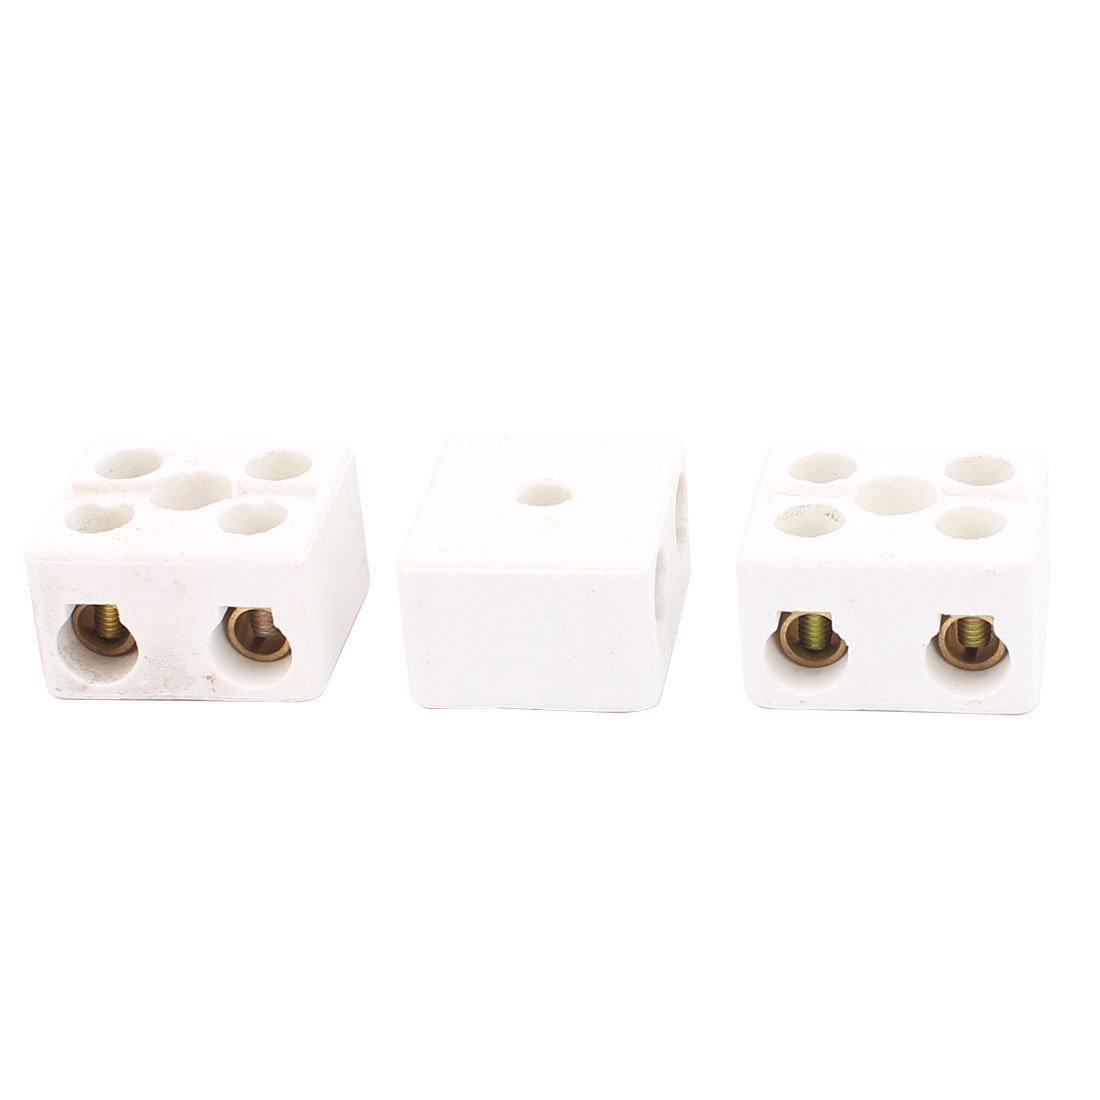 Uxcell a16030100ux0373 Cable Connector 2 Position 2 Row Ceramic Terminal Block, 220V, 30 Amp, 3 Piece